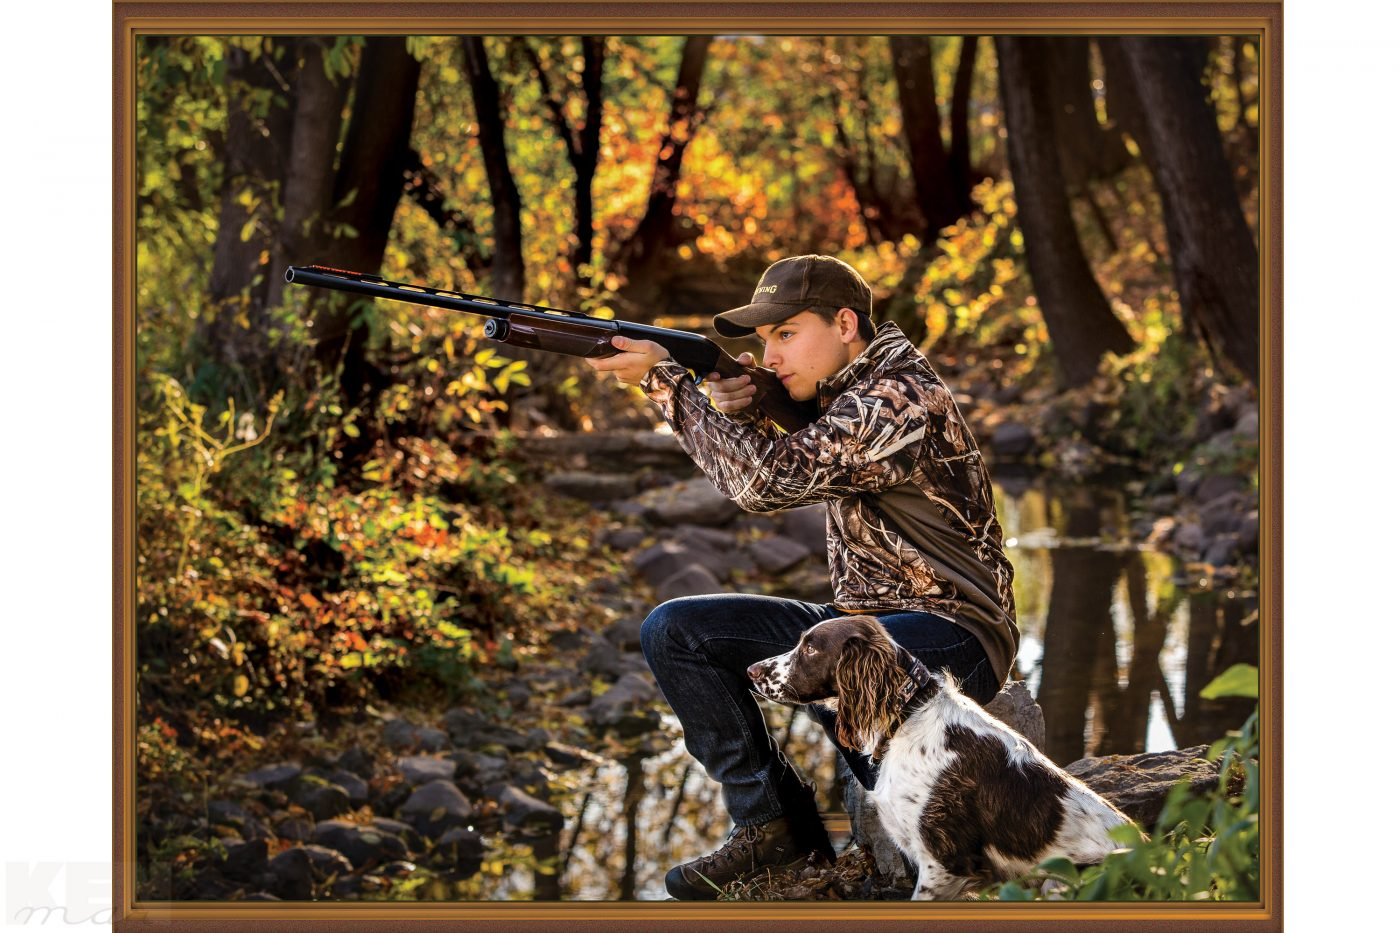 A boy, a dog, a gun, hunting.